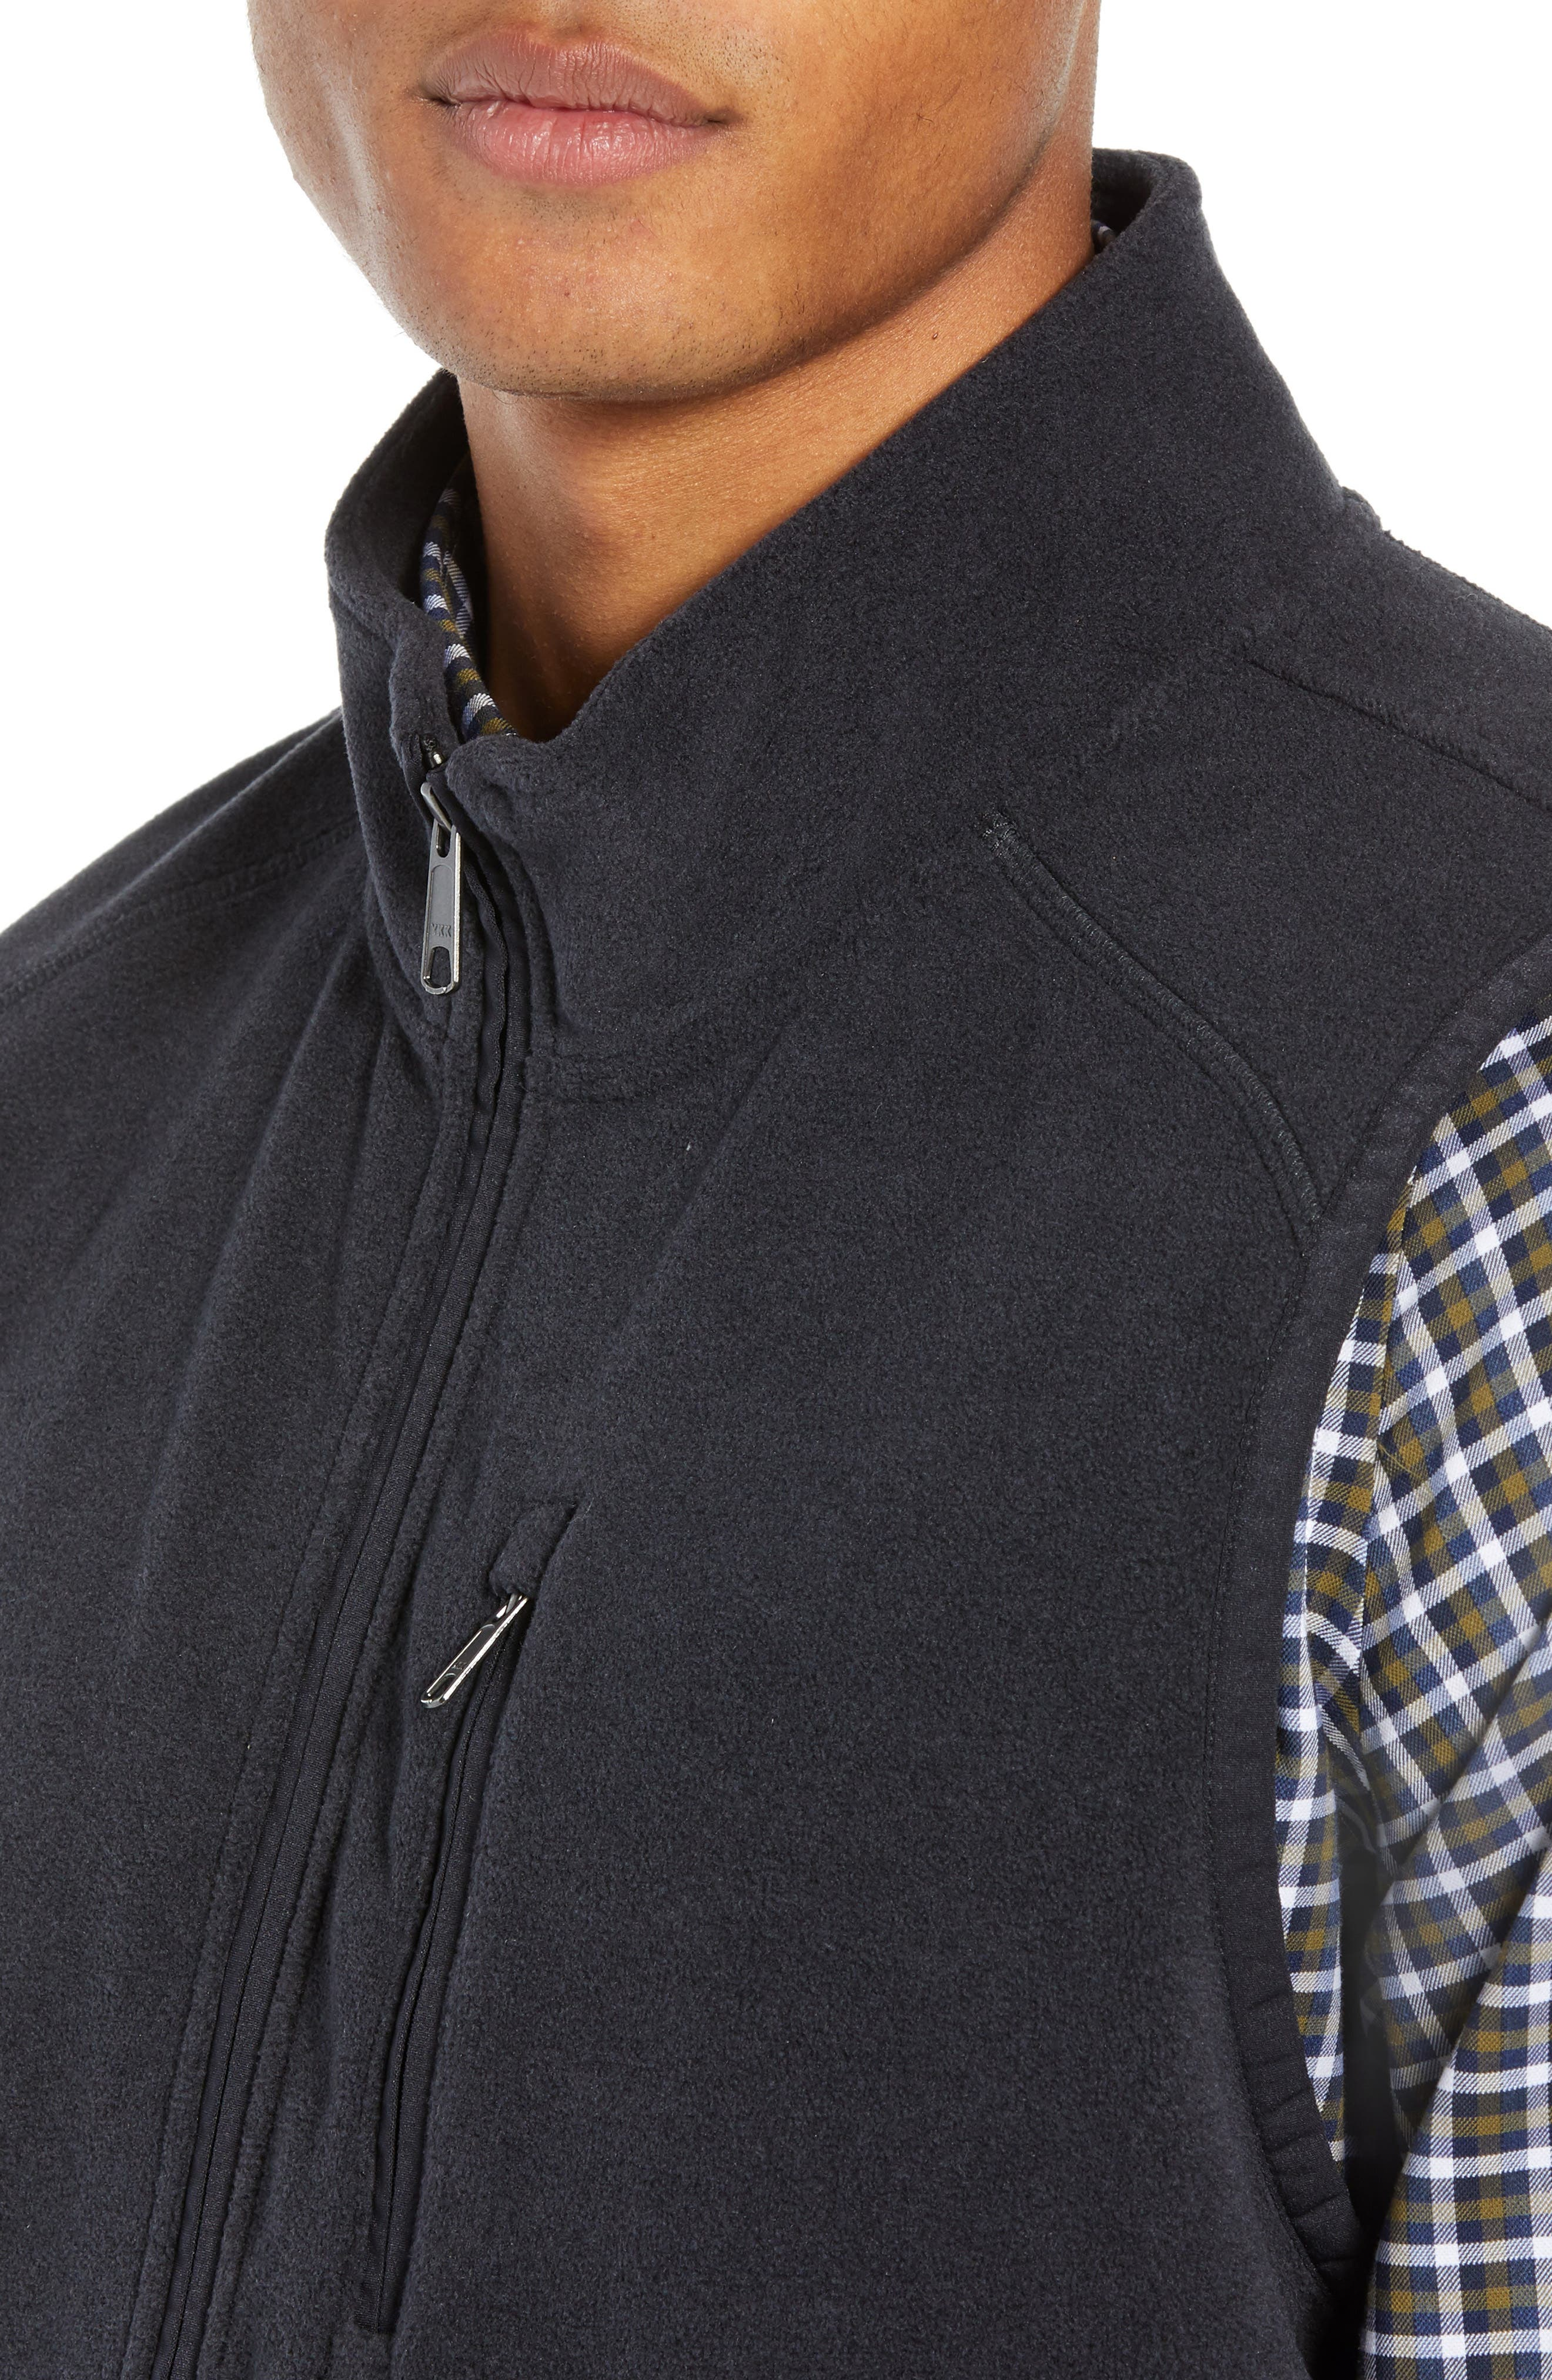 Polar Fleece Vest,                             Alternate thumbnail 4, color,                             001